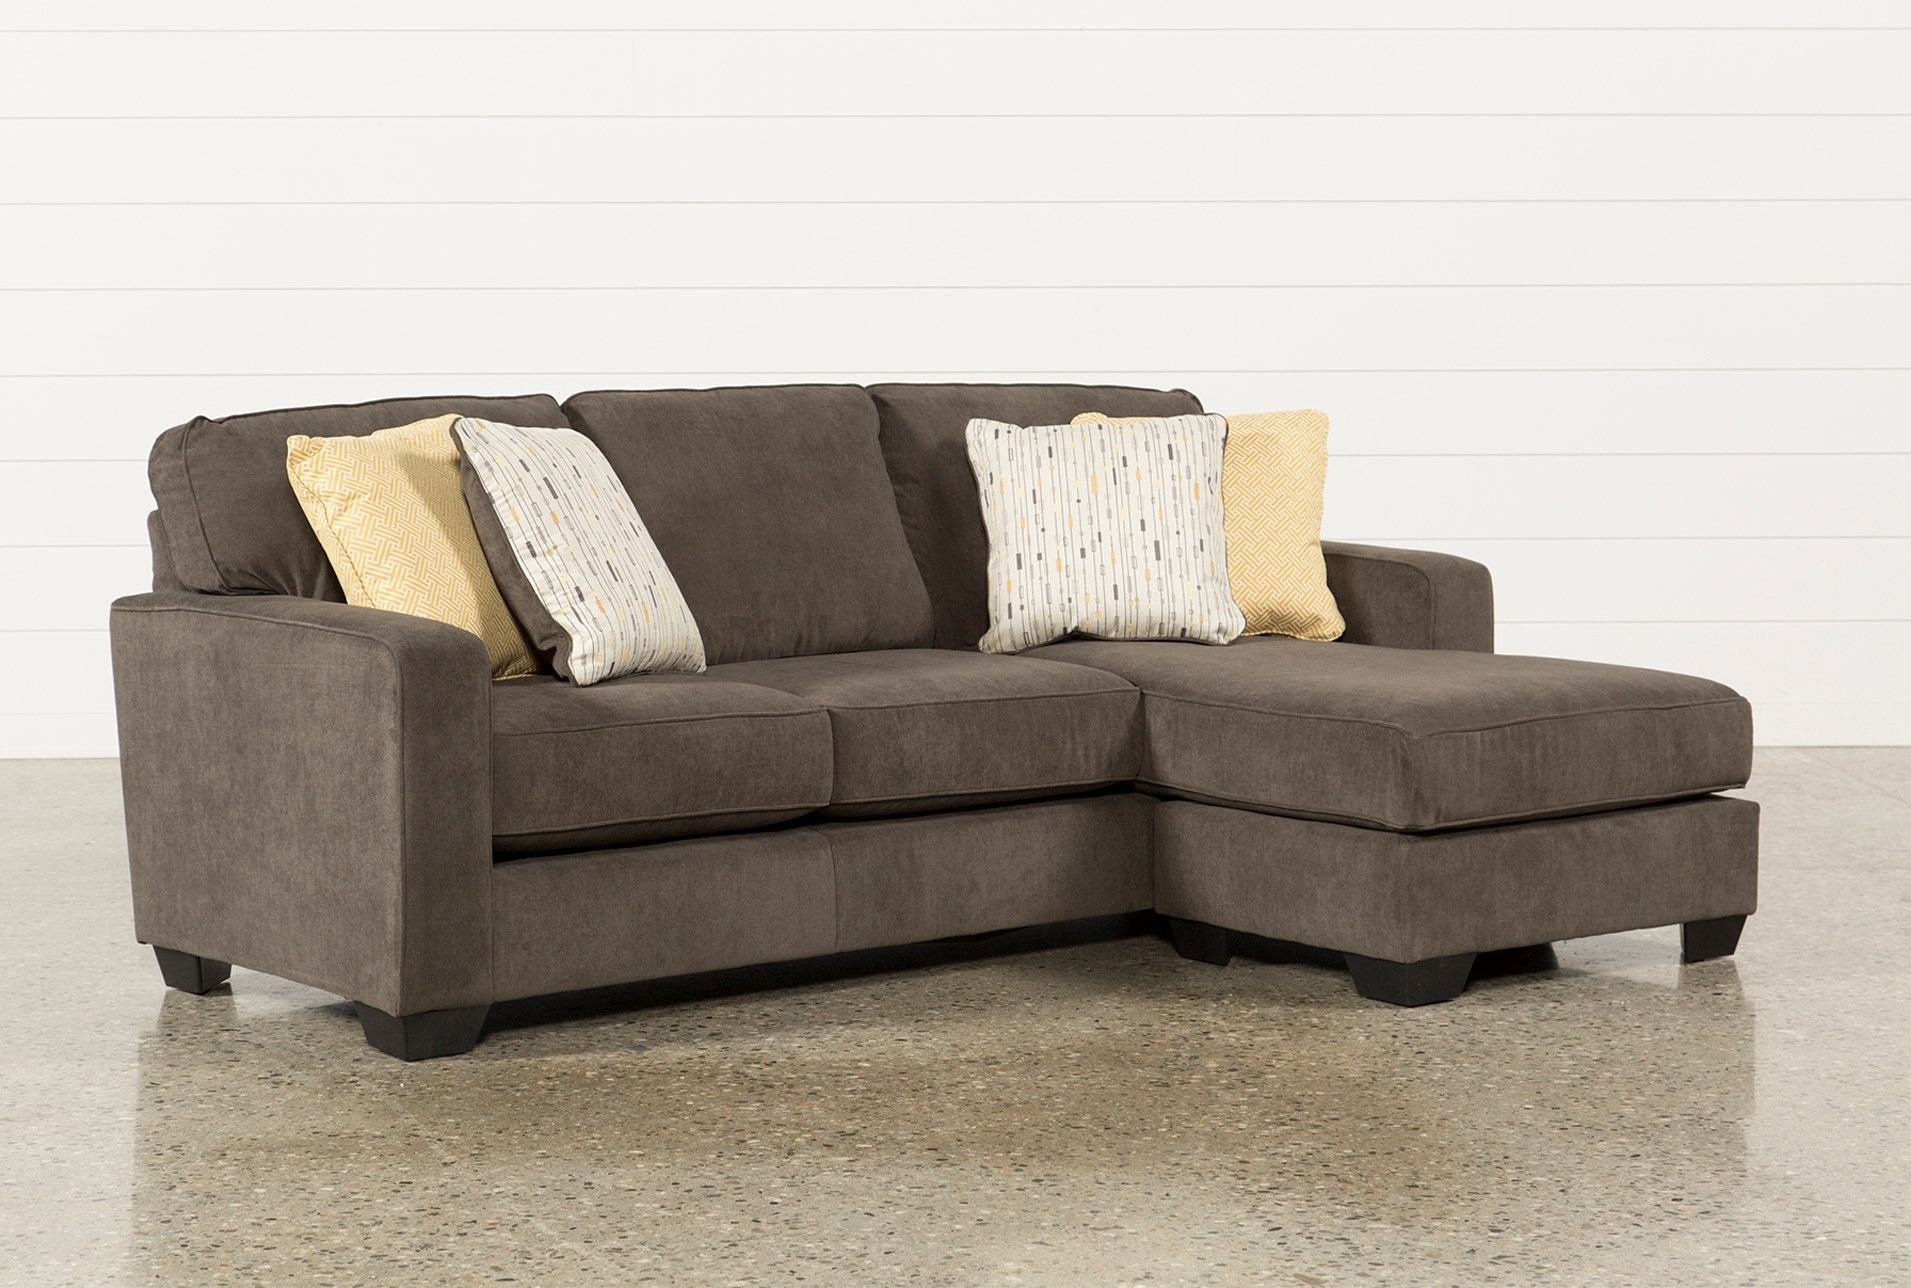 Sofa chase zella sofa chaise sectional andrew s furniture for Ashley beige sofa chaise